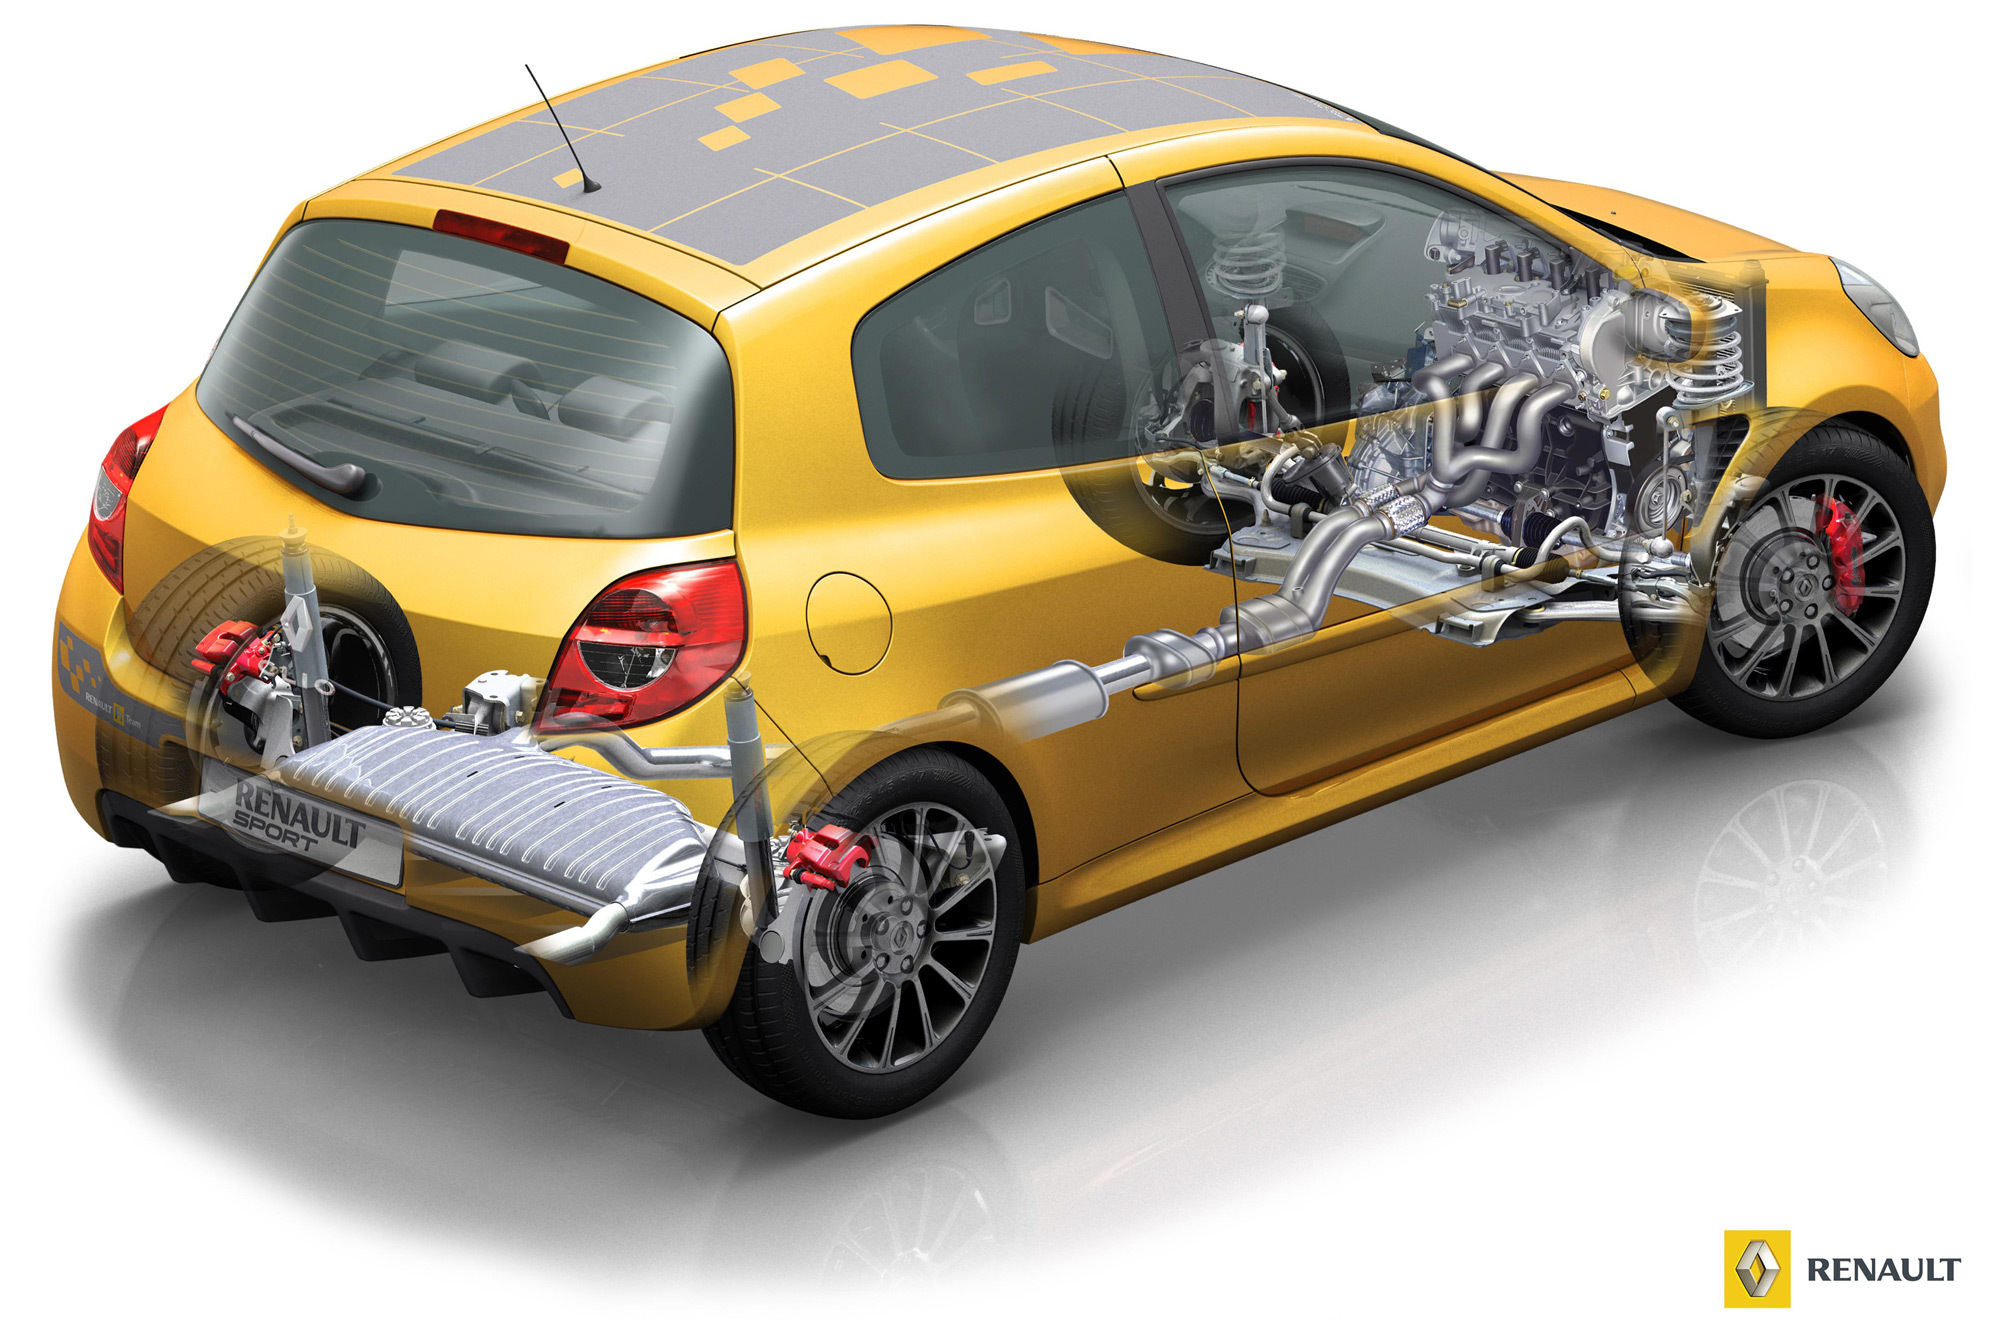 2009 renault clio iii sport pictures information and specs auto renault clio iii sport 2009 images 13 publicscrutiny Choice Image